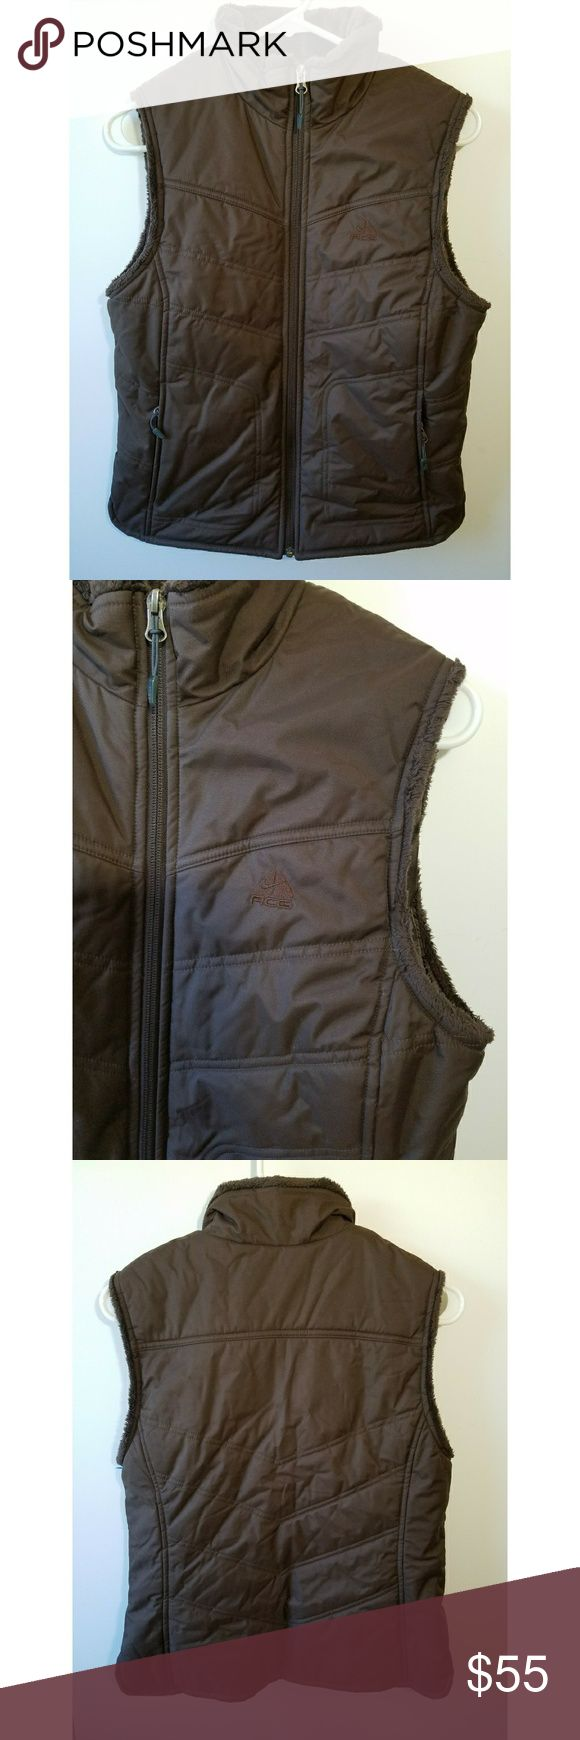 Nike ACG Zip Up Puffer Vest New Condition With Out Tags Nike ACG Jackets & Coats Vests